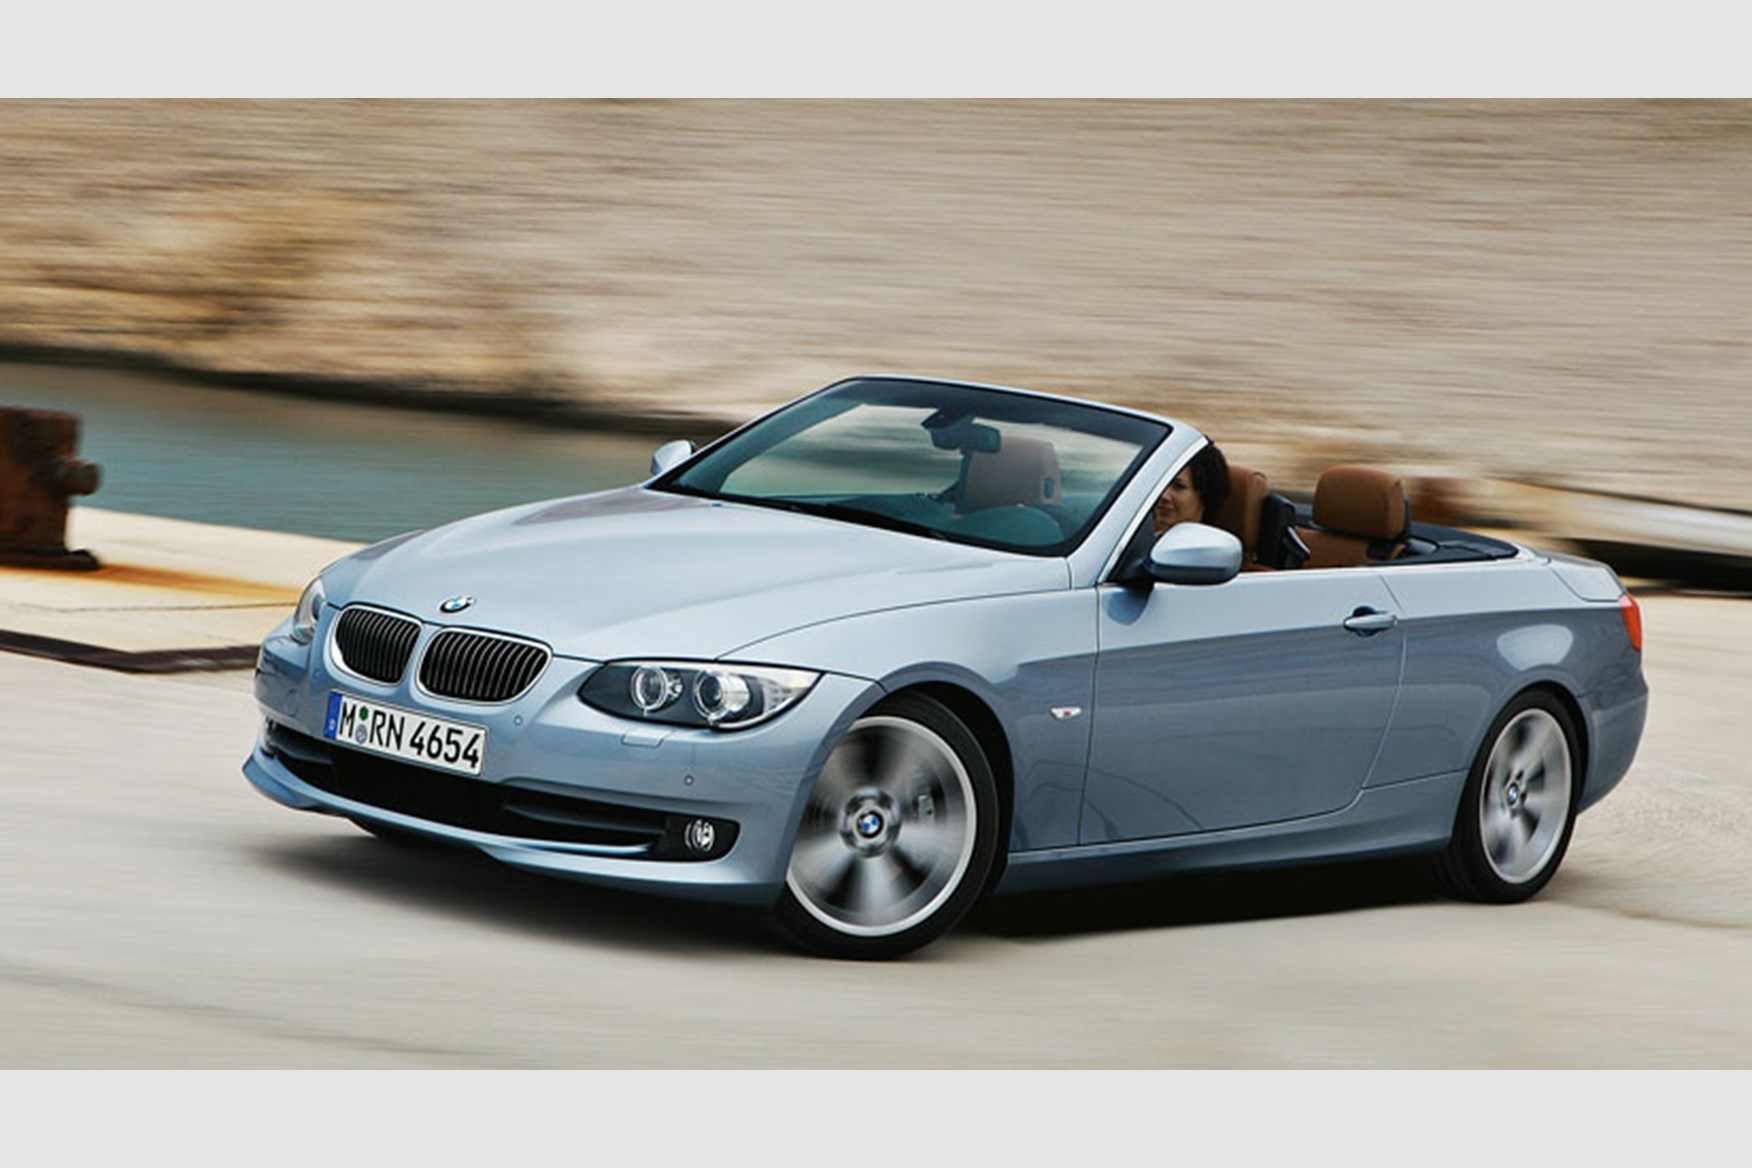 bmw 3 series coup u00e9 and convertible facelift  2010  first official pictures by car magazine BMW 545I Manual Manual BMW 320I Interior